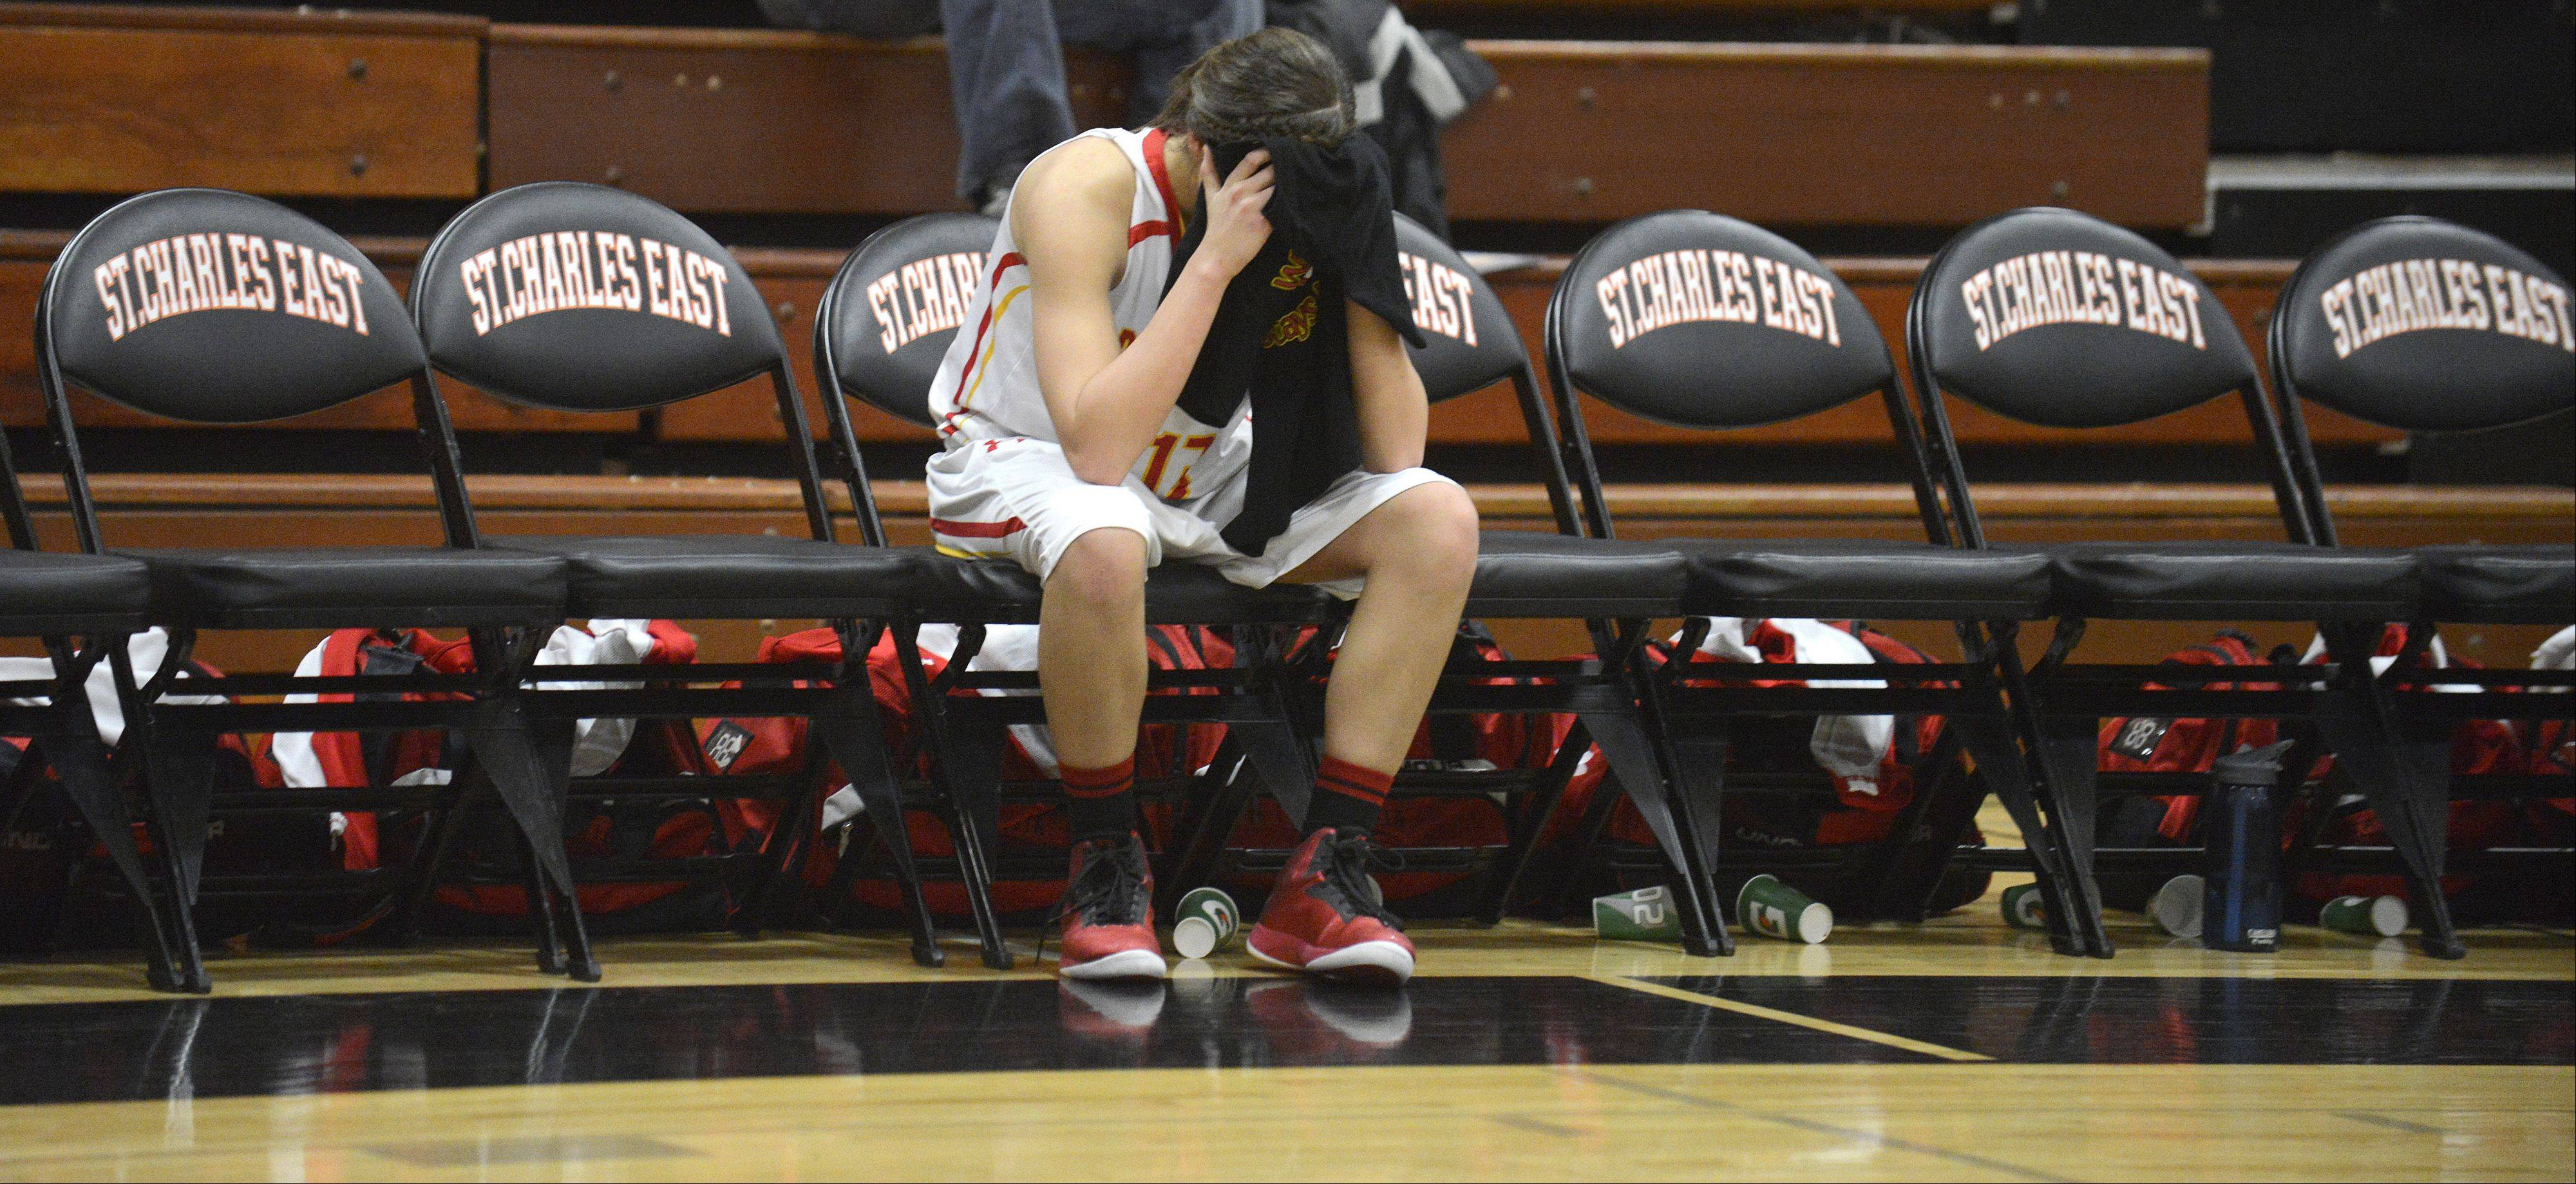 Laura Stoecker/lstoecker@dailyherald.comBatavia's Miranda Grizaffi sits on the bench as clock ticks down to the Bulldogs' loss to the St. Charles East Saints in the 4A regional on Tuesday, February 12.